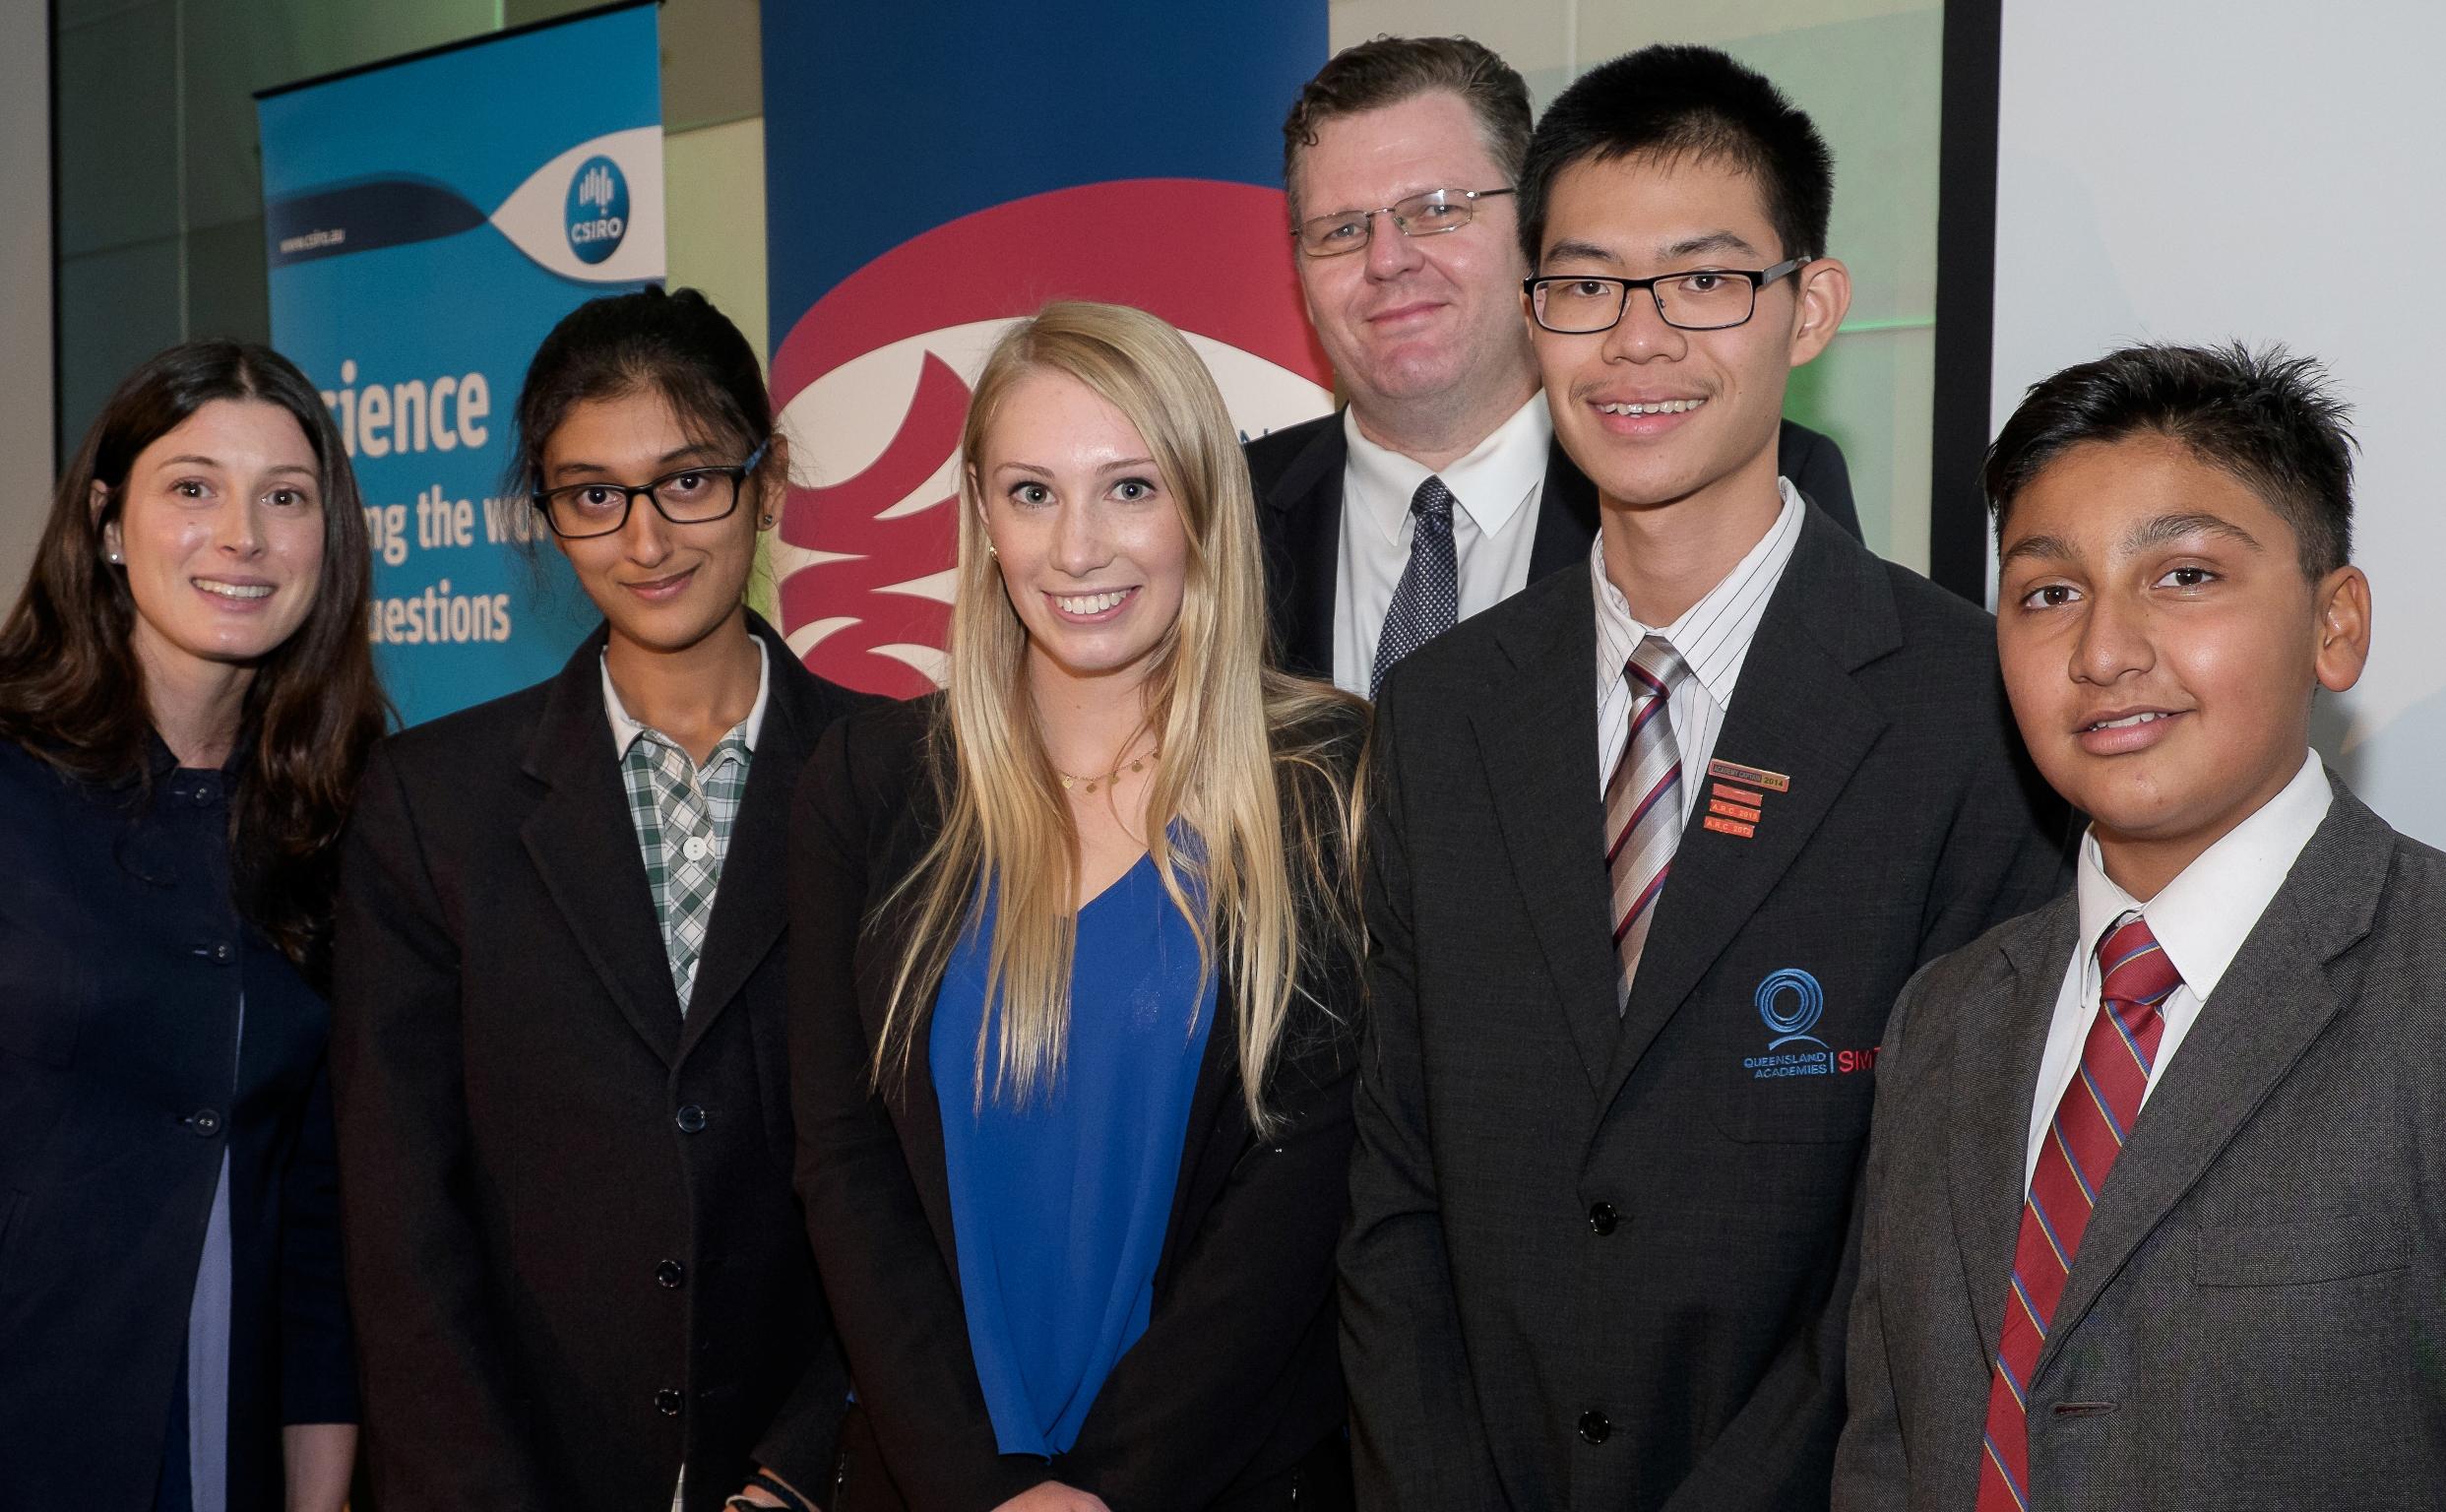 Winners from the 2014 BHP Billiton Science and Engineering Awards